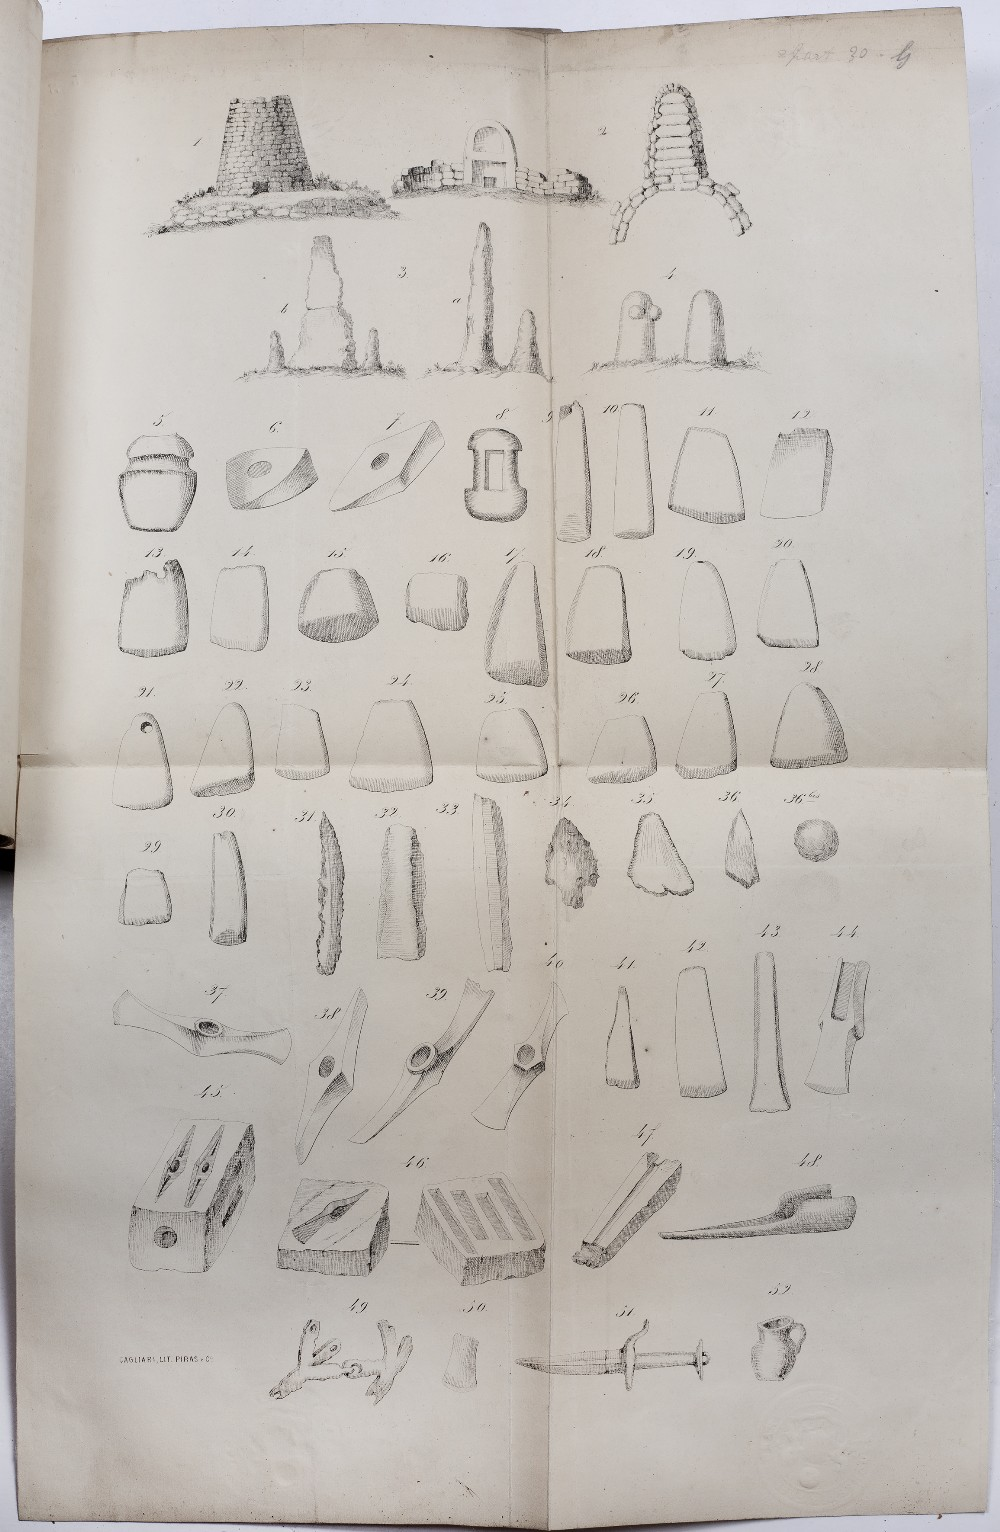 A COLLECTION OF PUBLISHED PAPERS on Archaeology from the Library of F Chabas. French and Italian. - Image 3 of 3